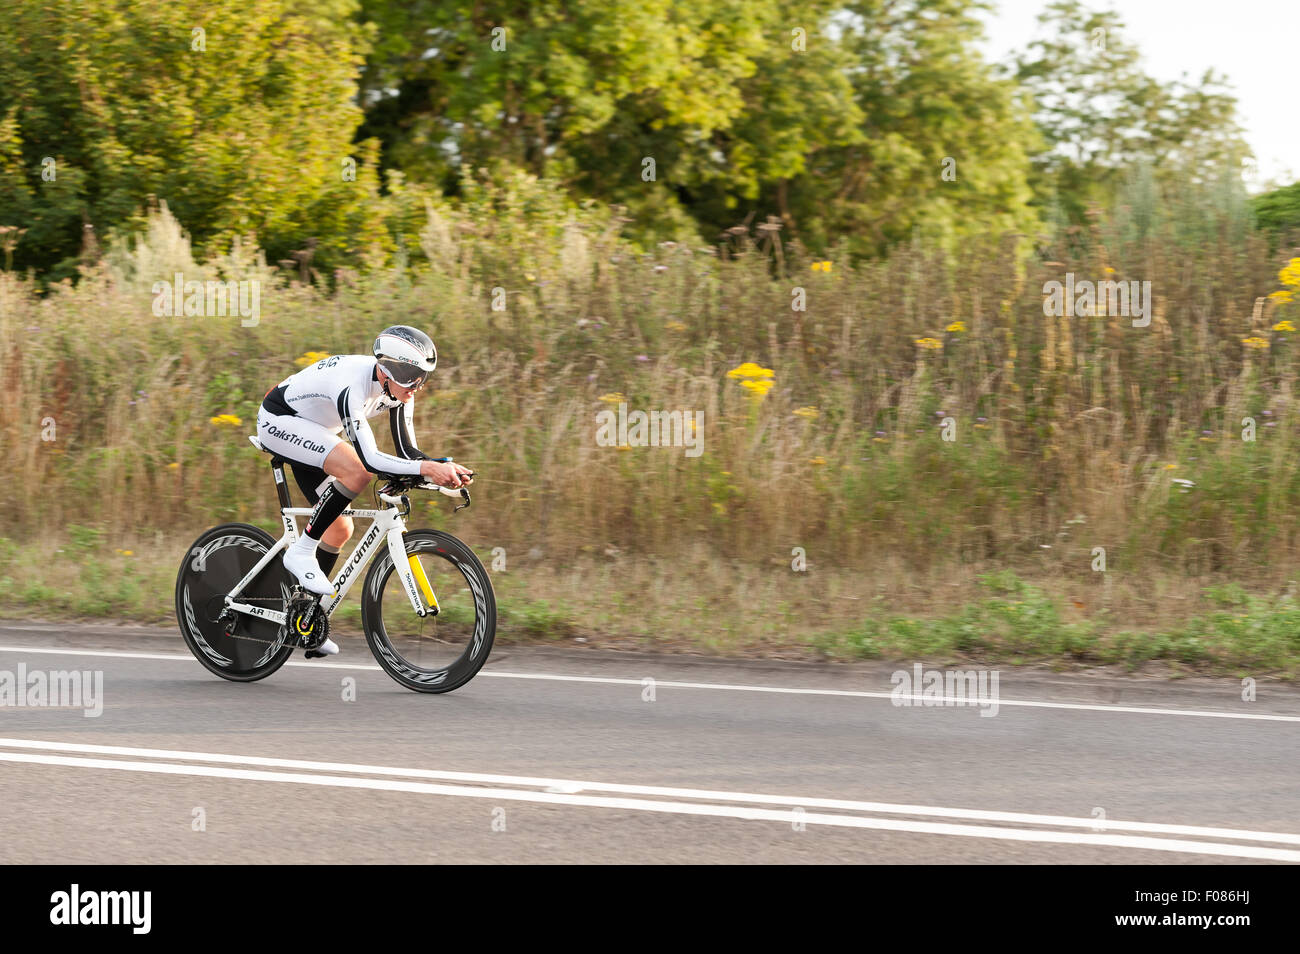 TT time trial cycling pairs on Brands Hatch road dedicated gear equipment bikes and streamlined on very fast road - Stock Image